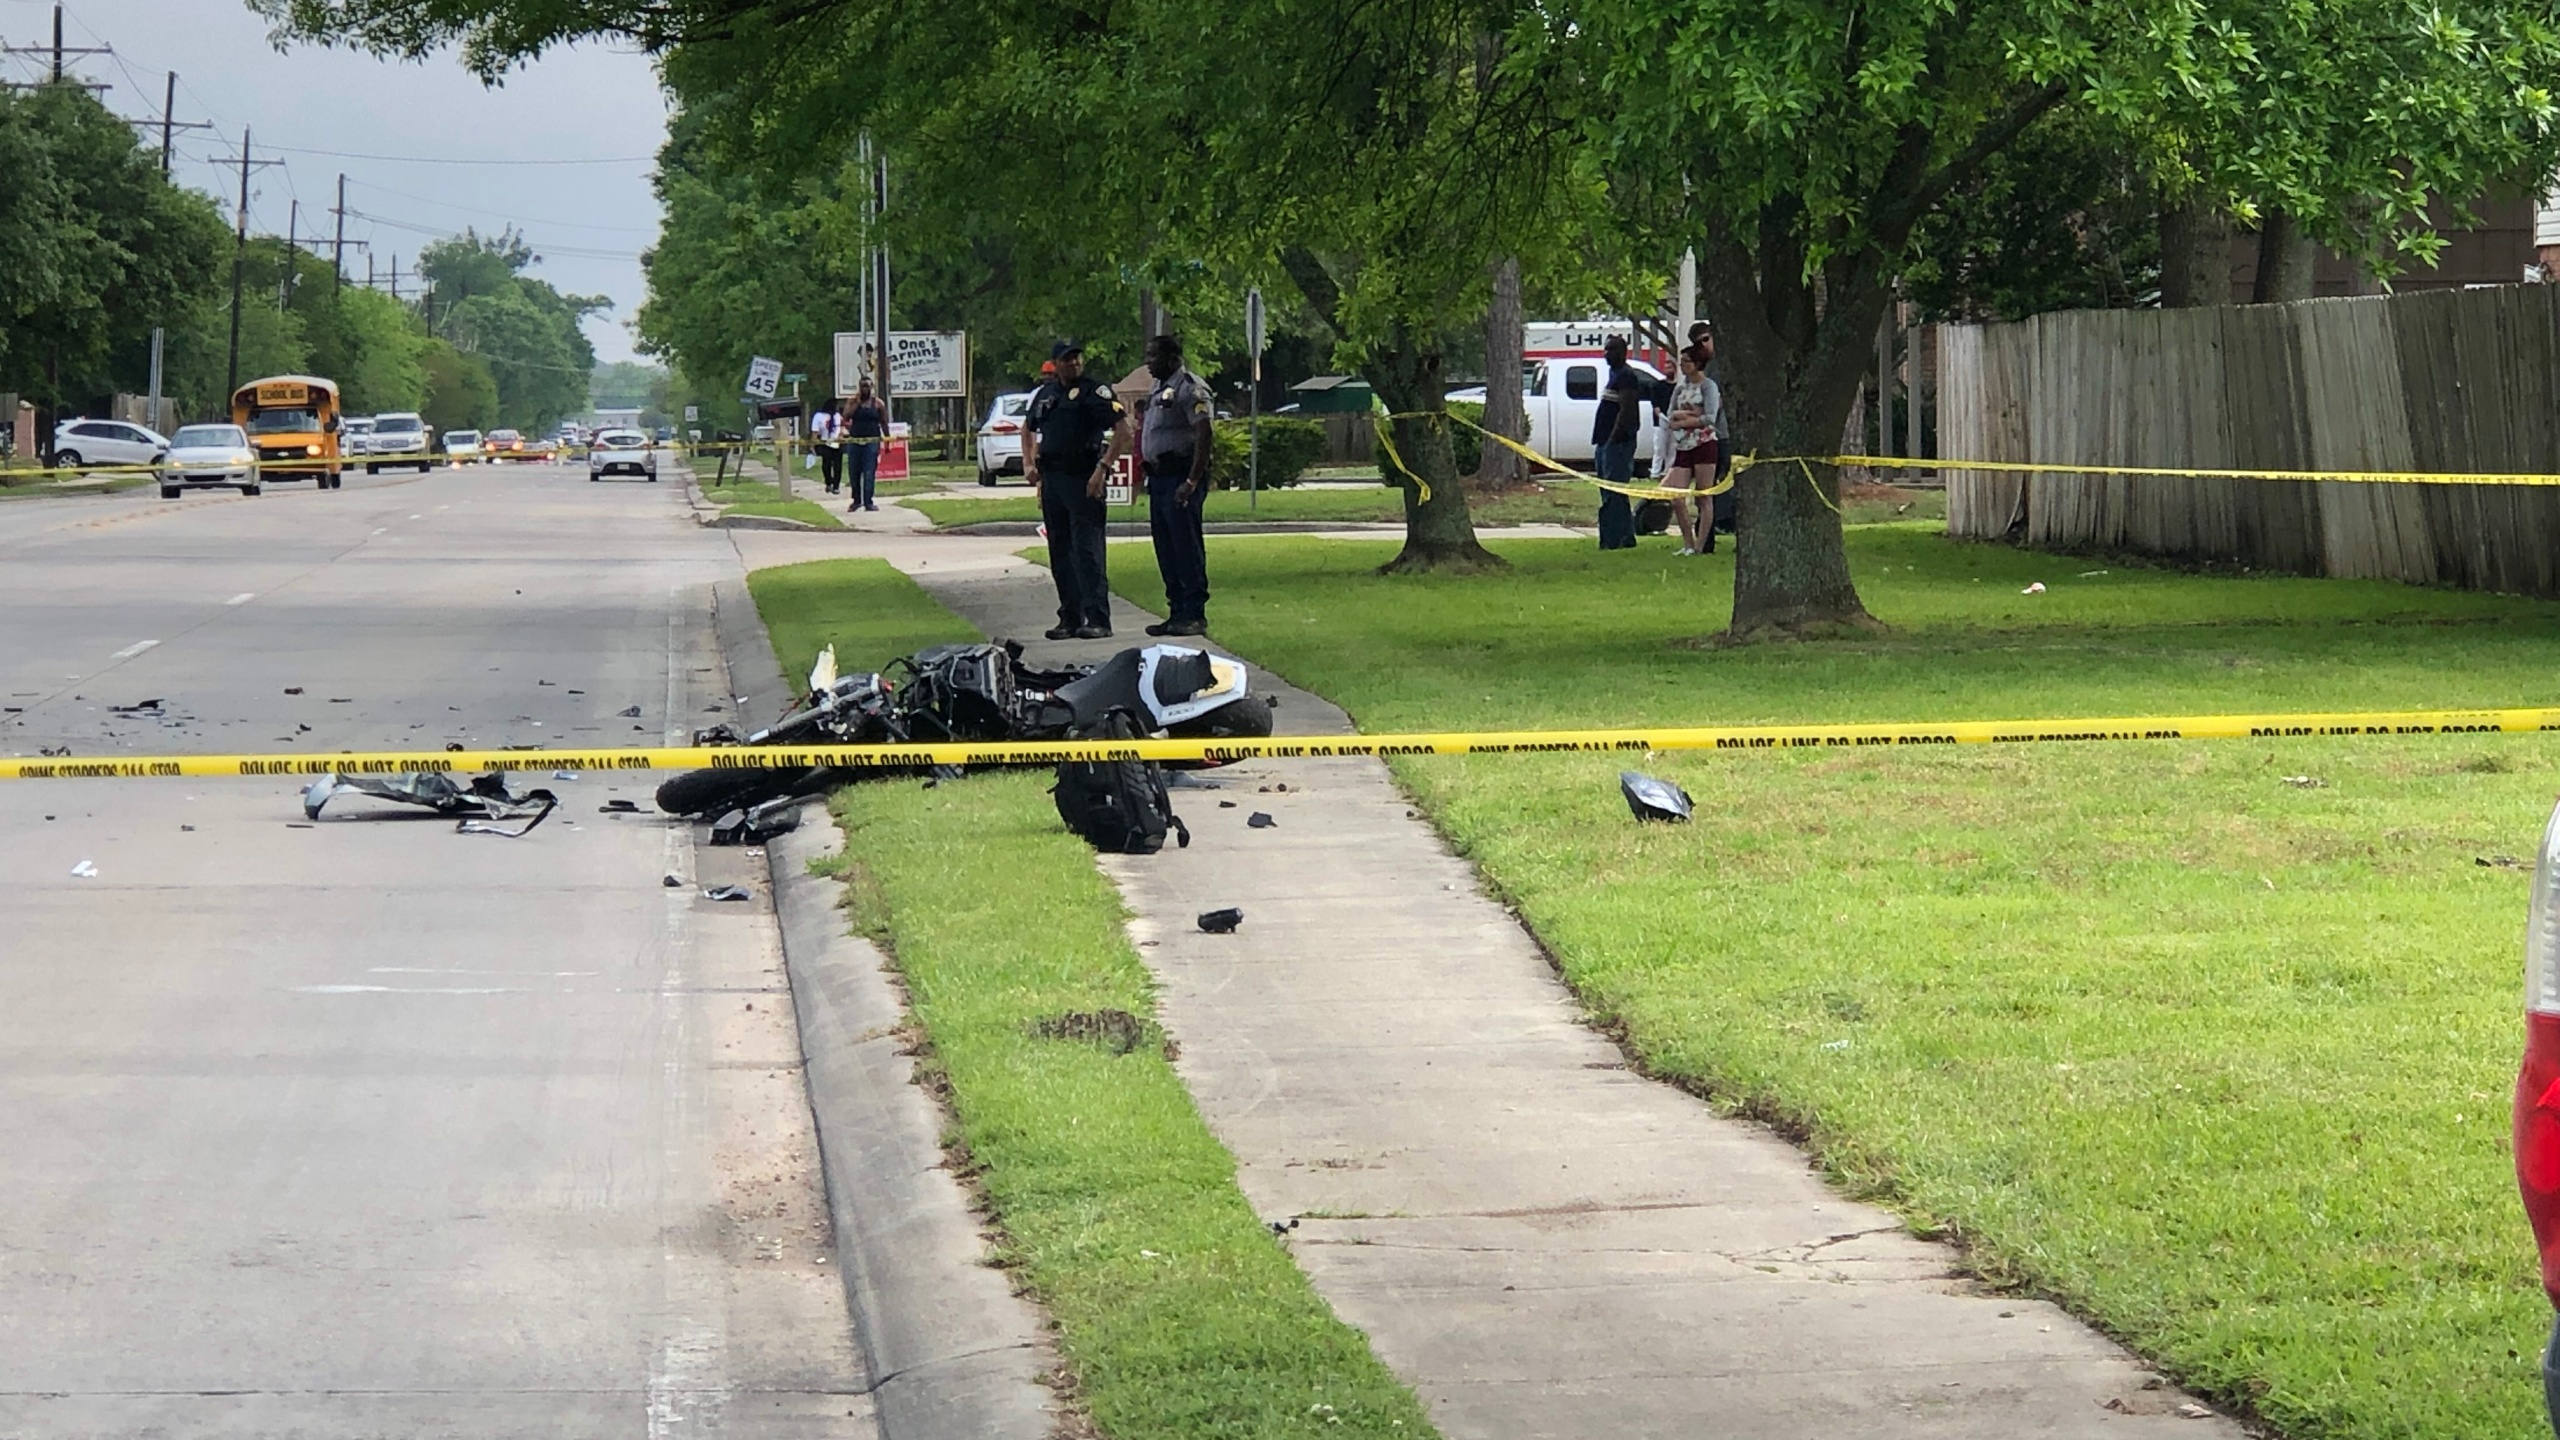 One killed in motorcycle accident near Coursey